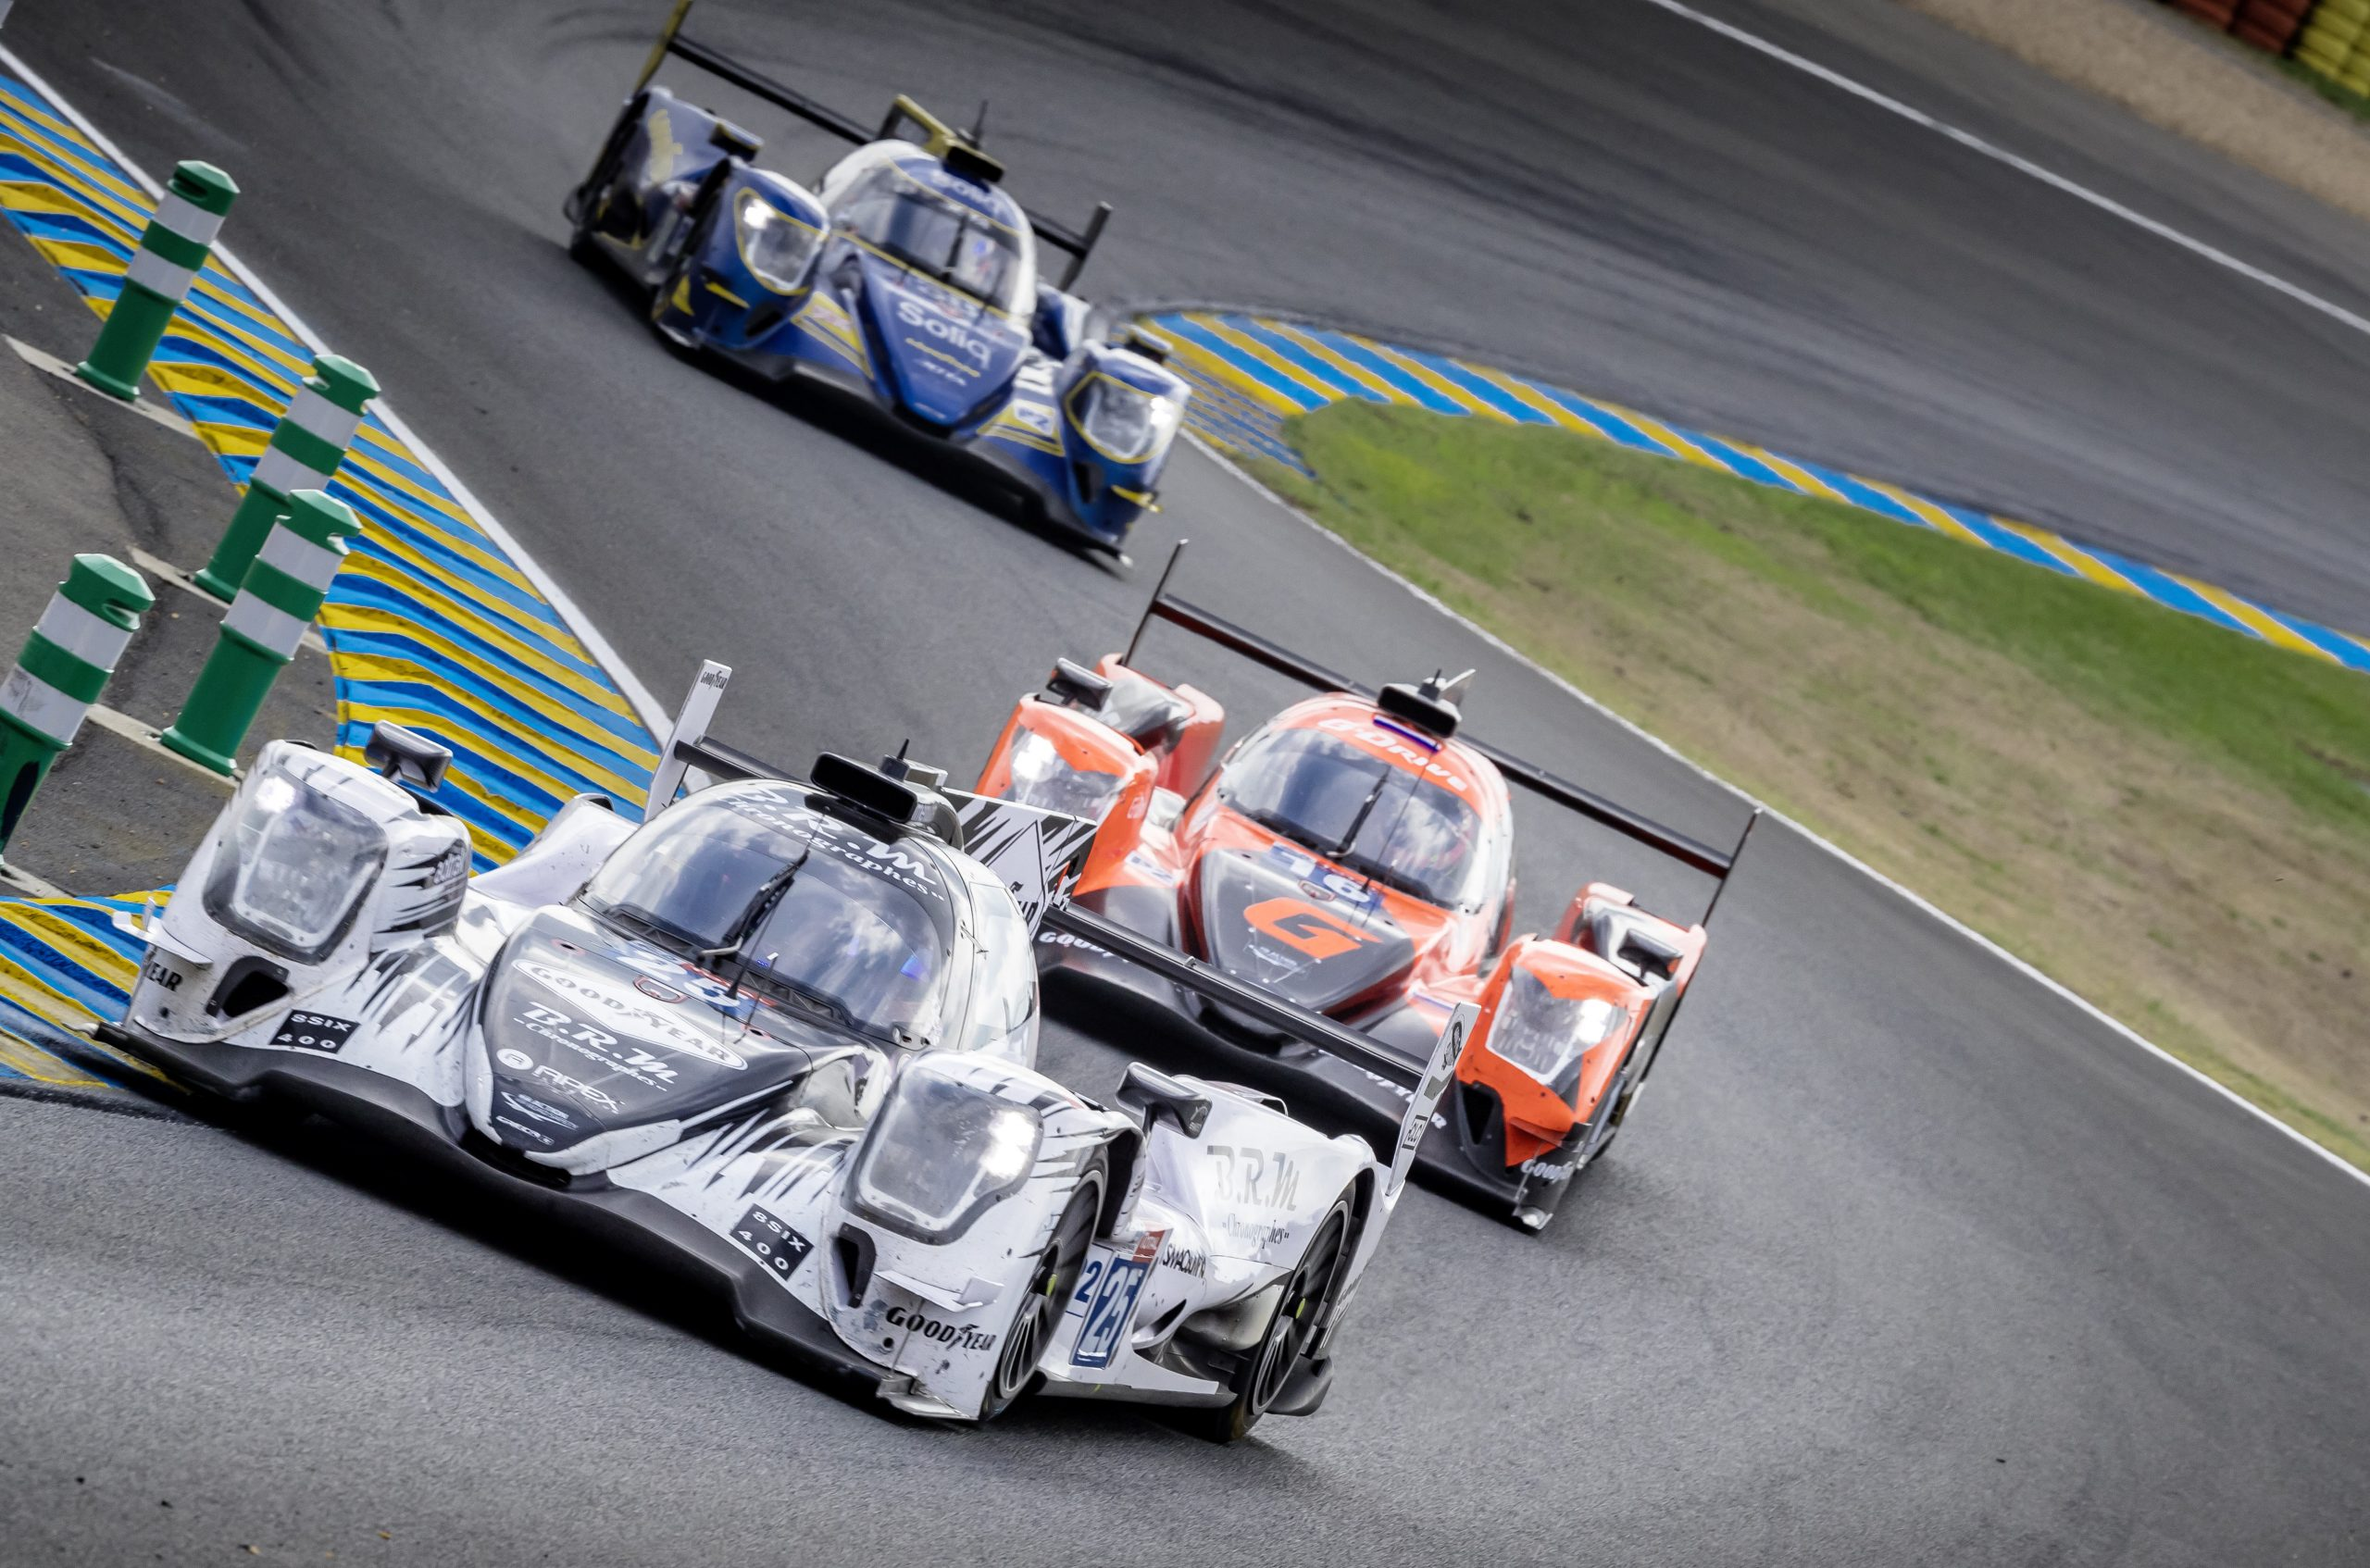 24 hours of Le Mans 2020 dynamic race action